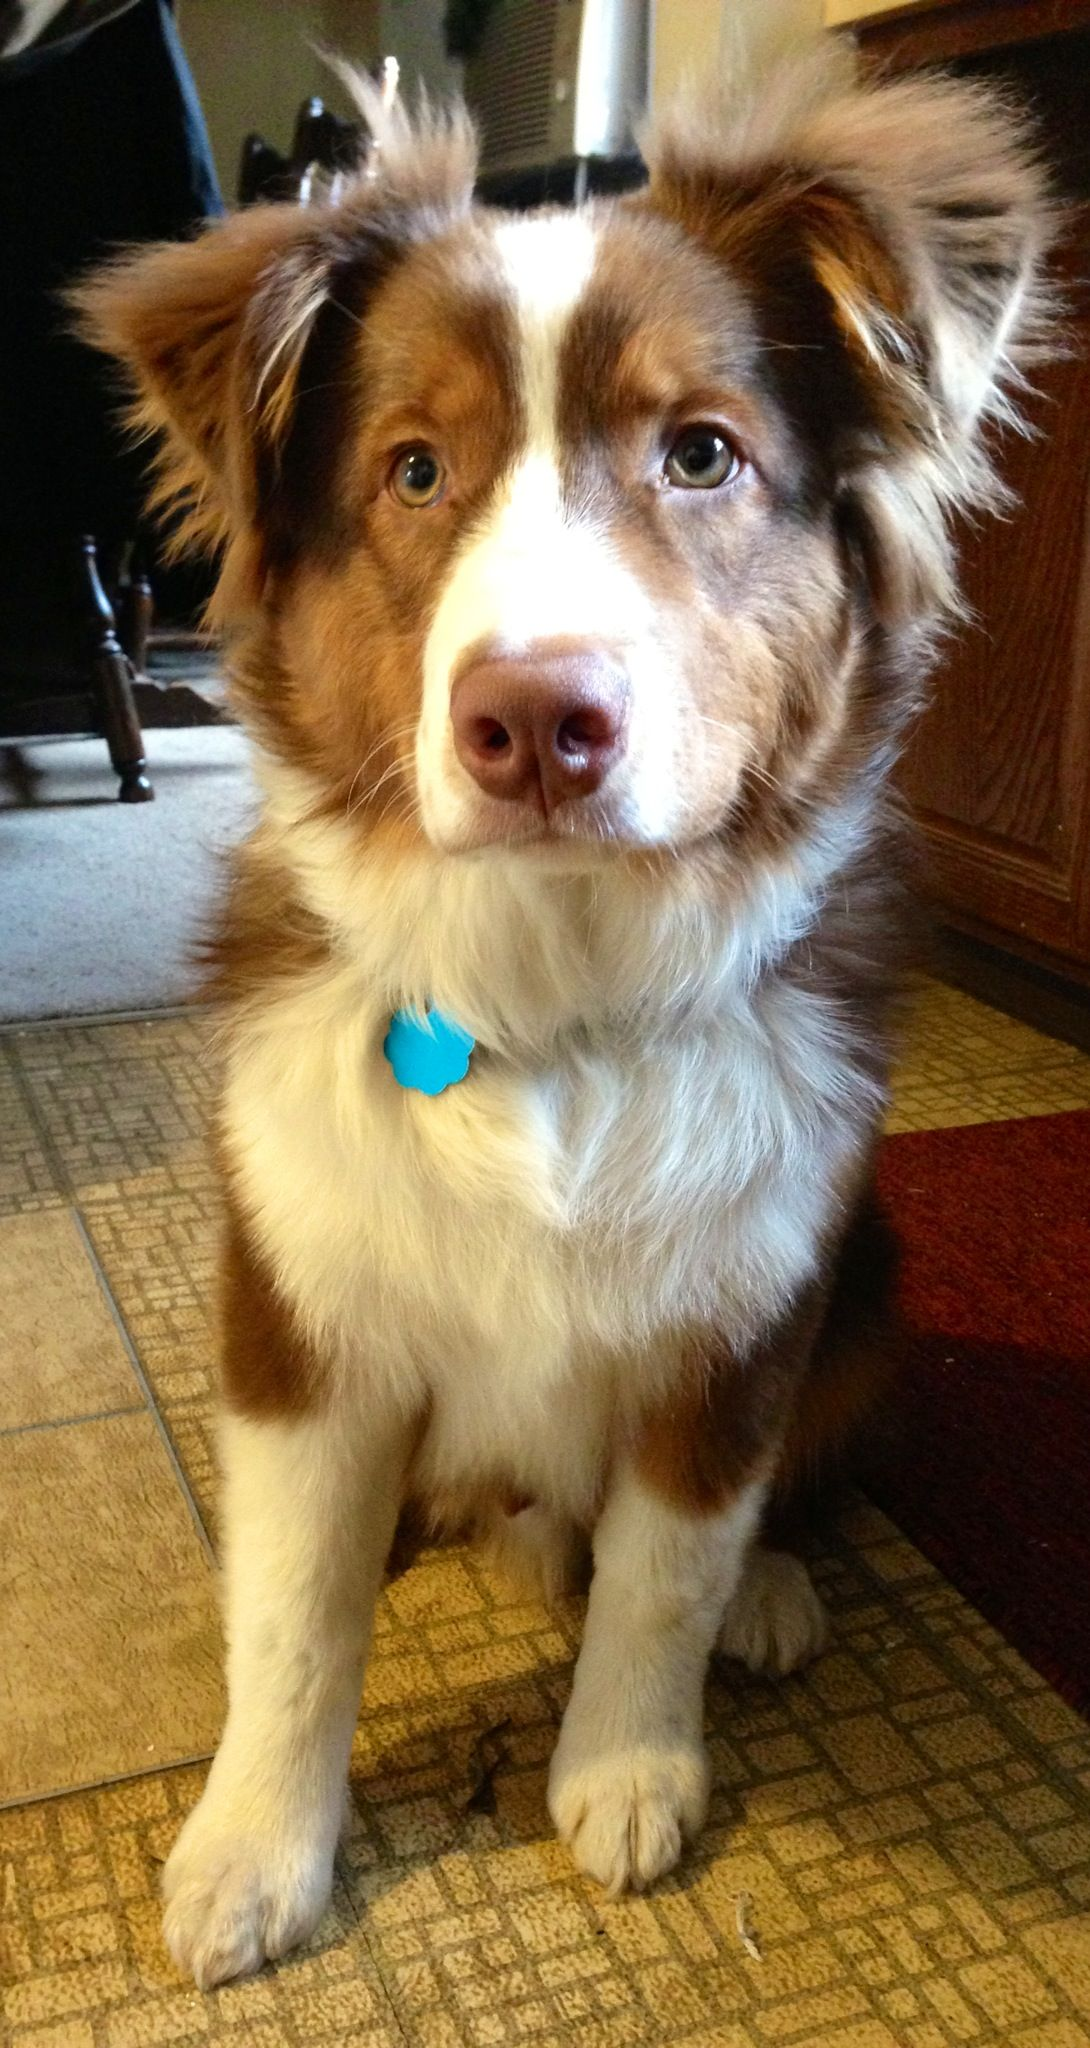 Australian Shepherd Healthiest Dog Breeds Cute Animals